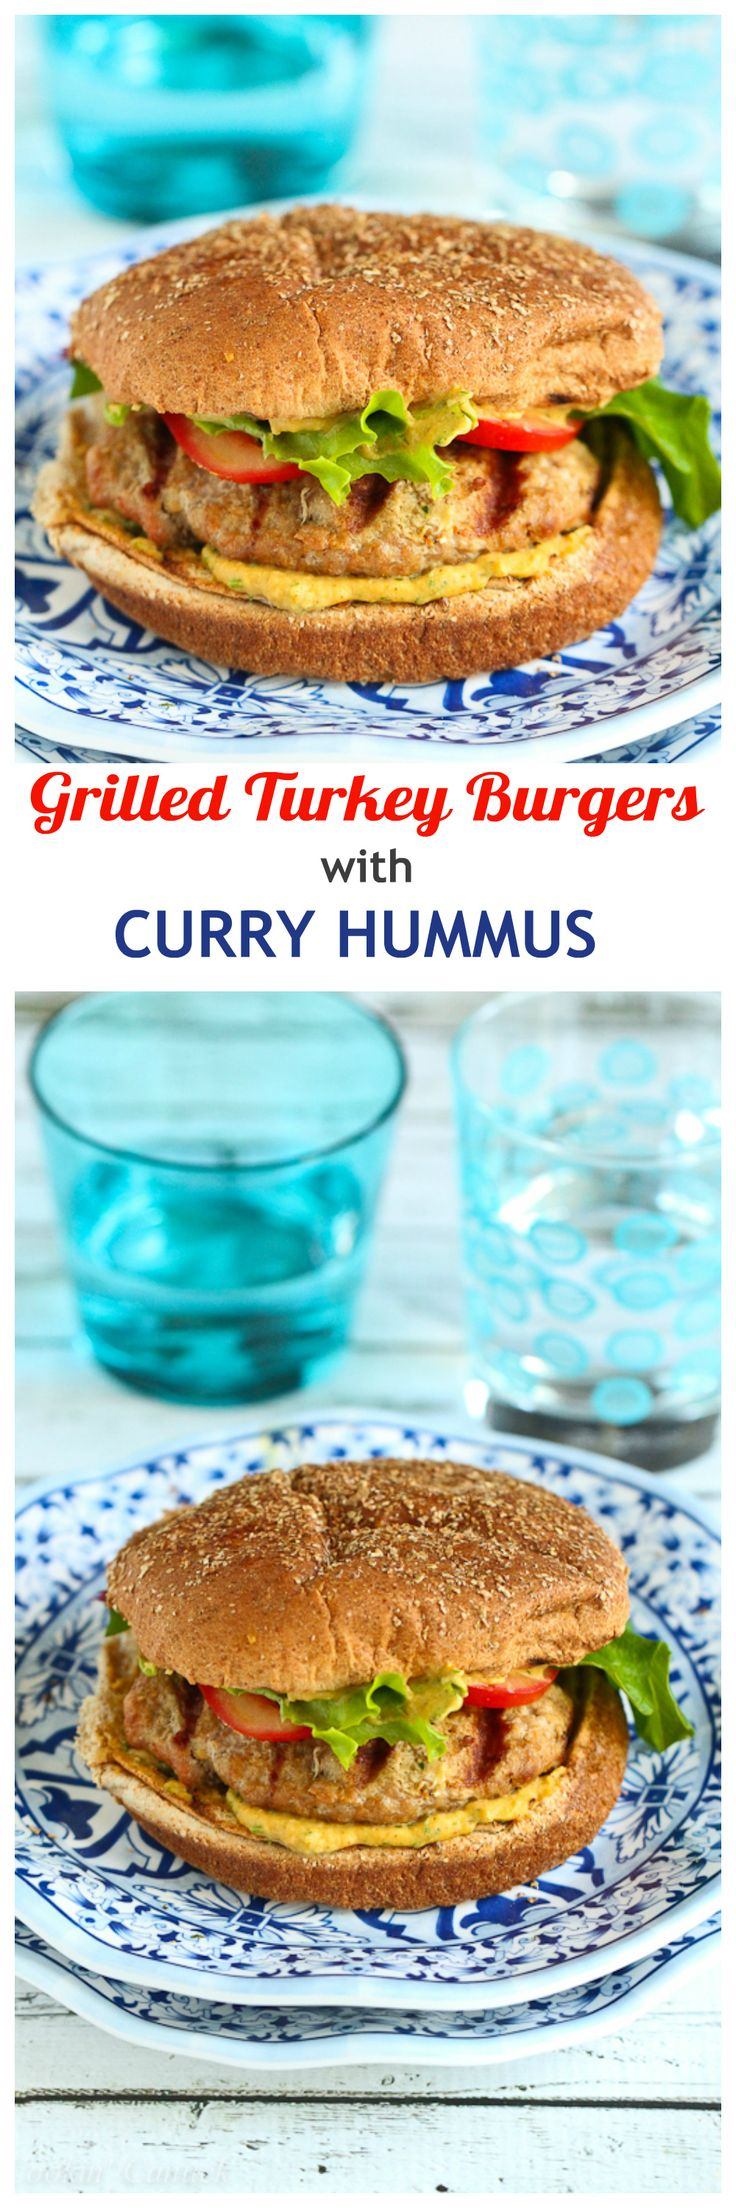 Grilled Turkey Burgers with Curry Hummus…254 calories and 7 Weight Watcher PP | cookincanuck.com #recipe #healthy